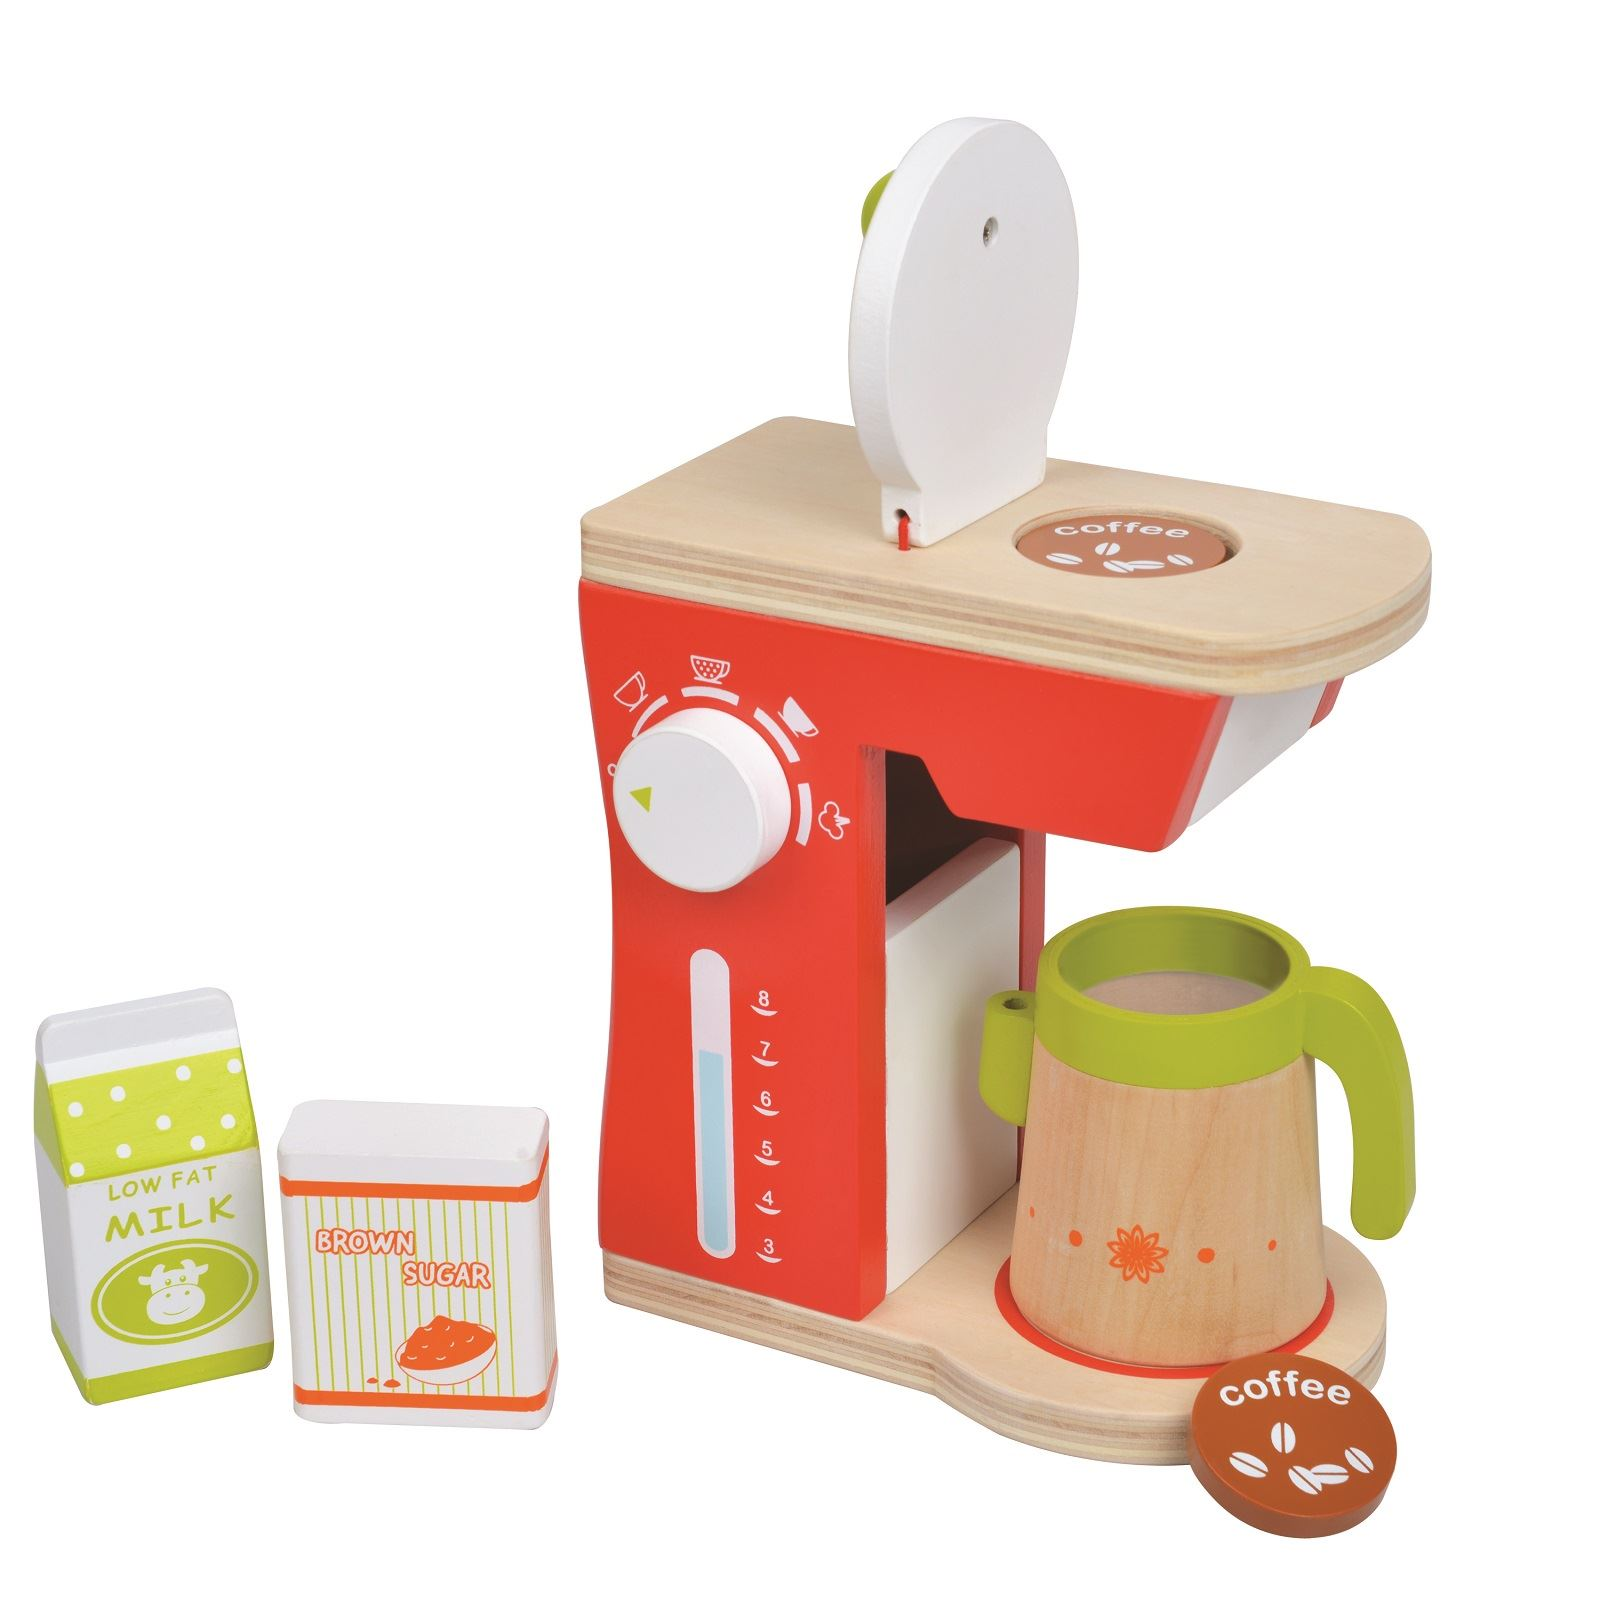 Lelin Wooden Drinks Coffee Tea Blender Mixer Making For